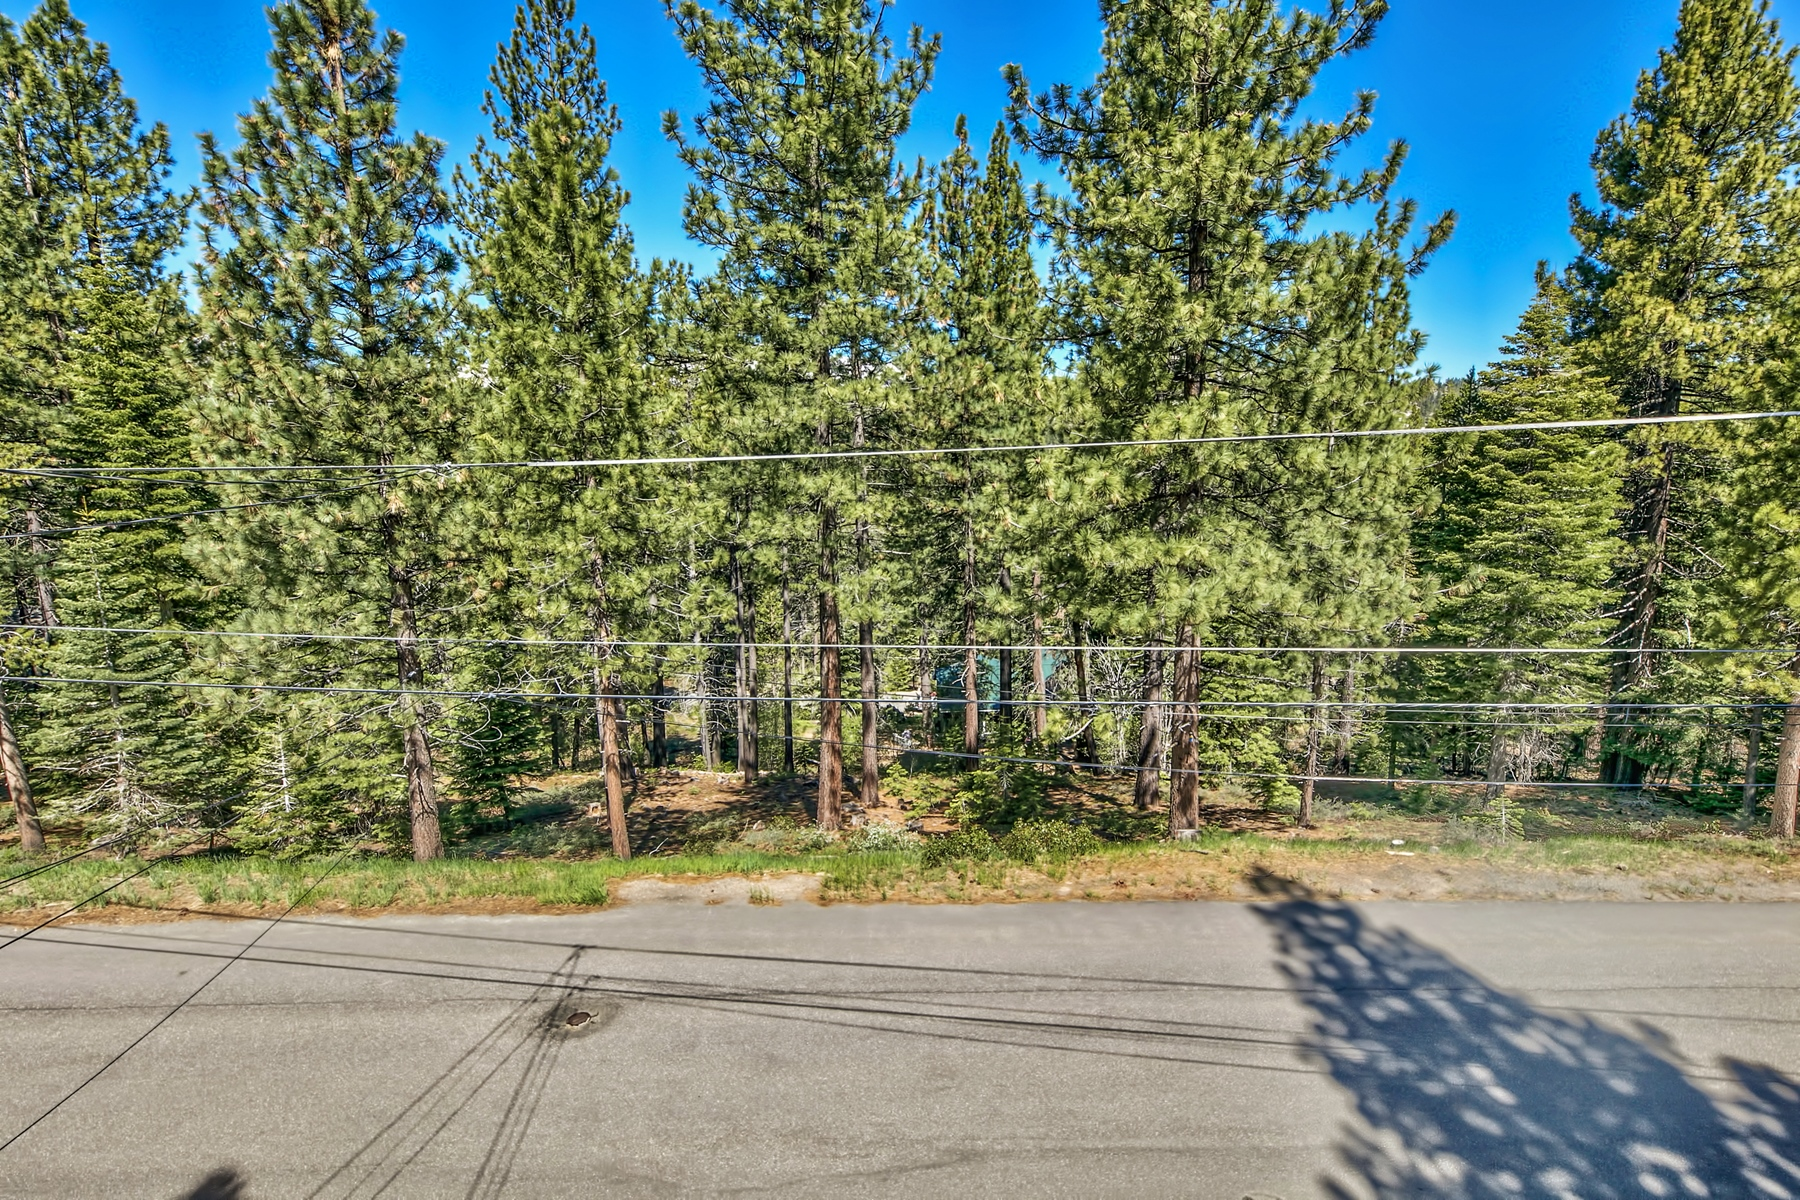 Additional photo for property listing at 1461 Skyline Drive, South Lake Tahoe, CA 96150 1461 Skyline Drive South Lake Tahoe, California 96150 United States